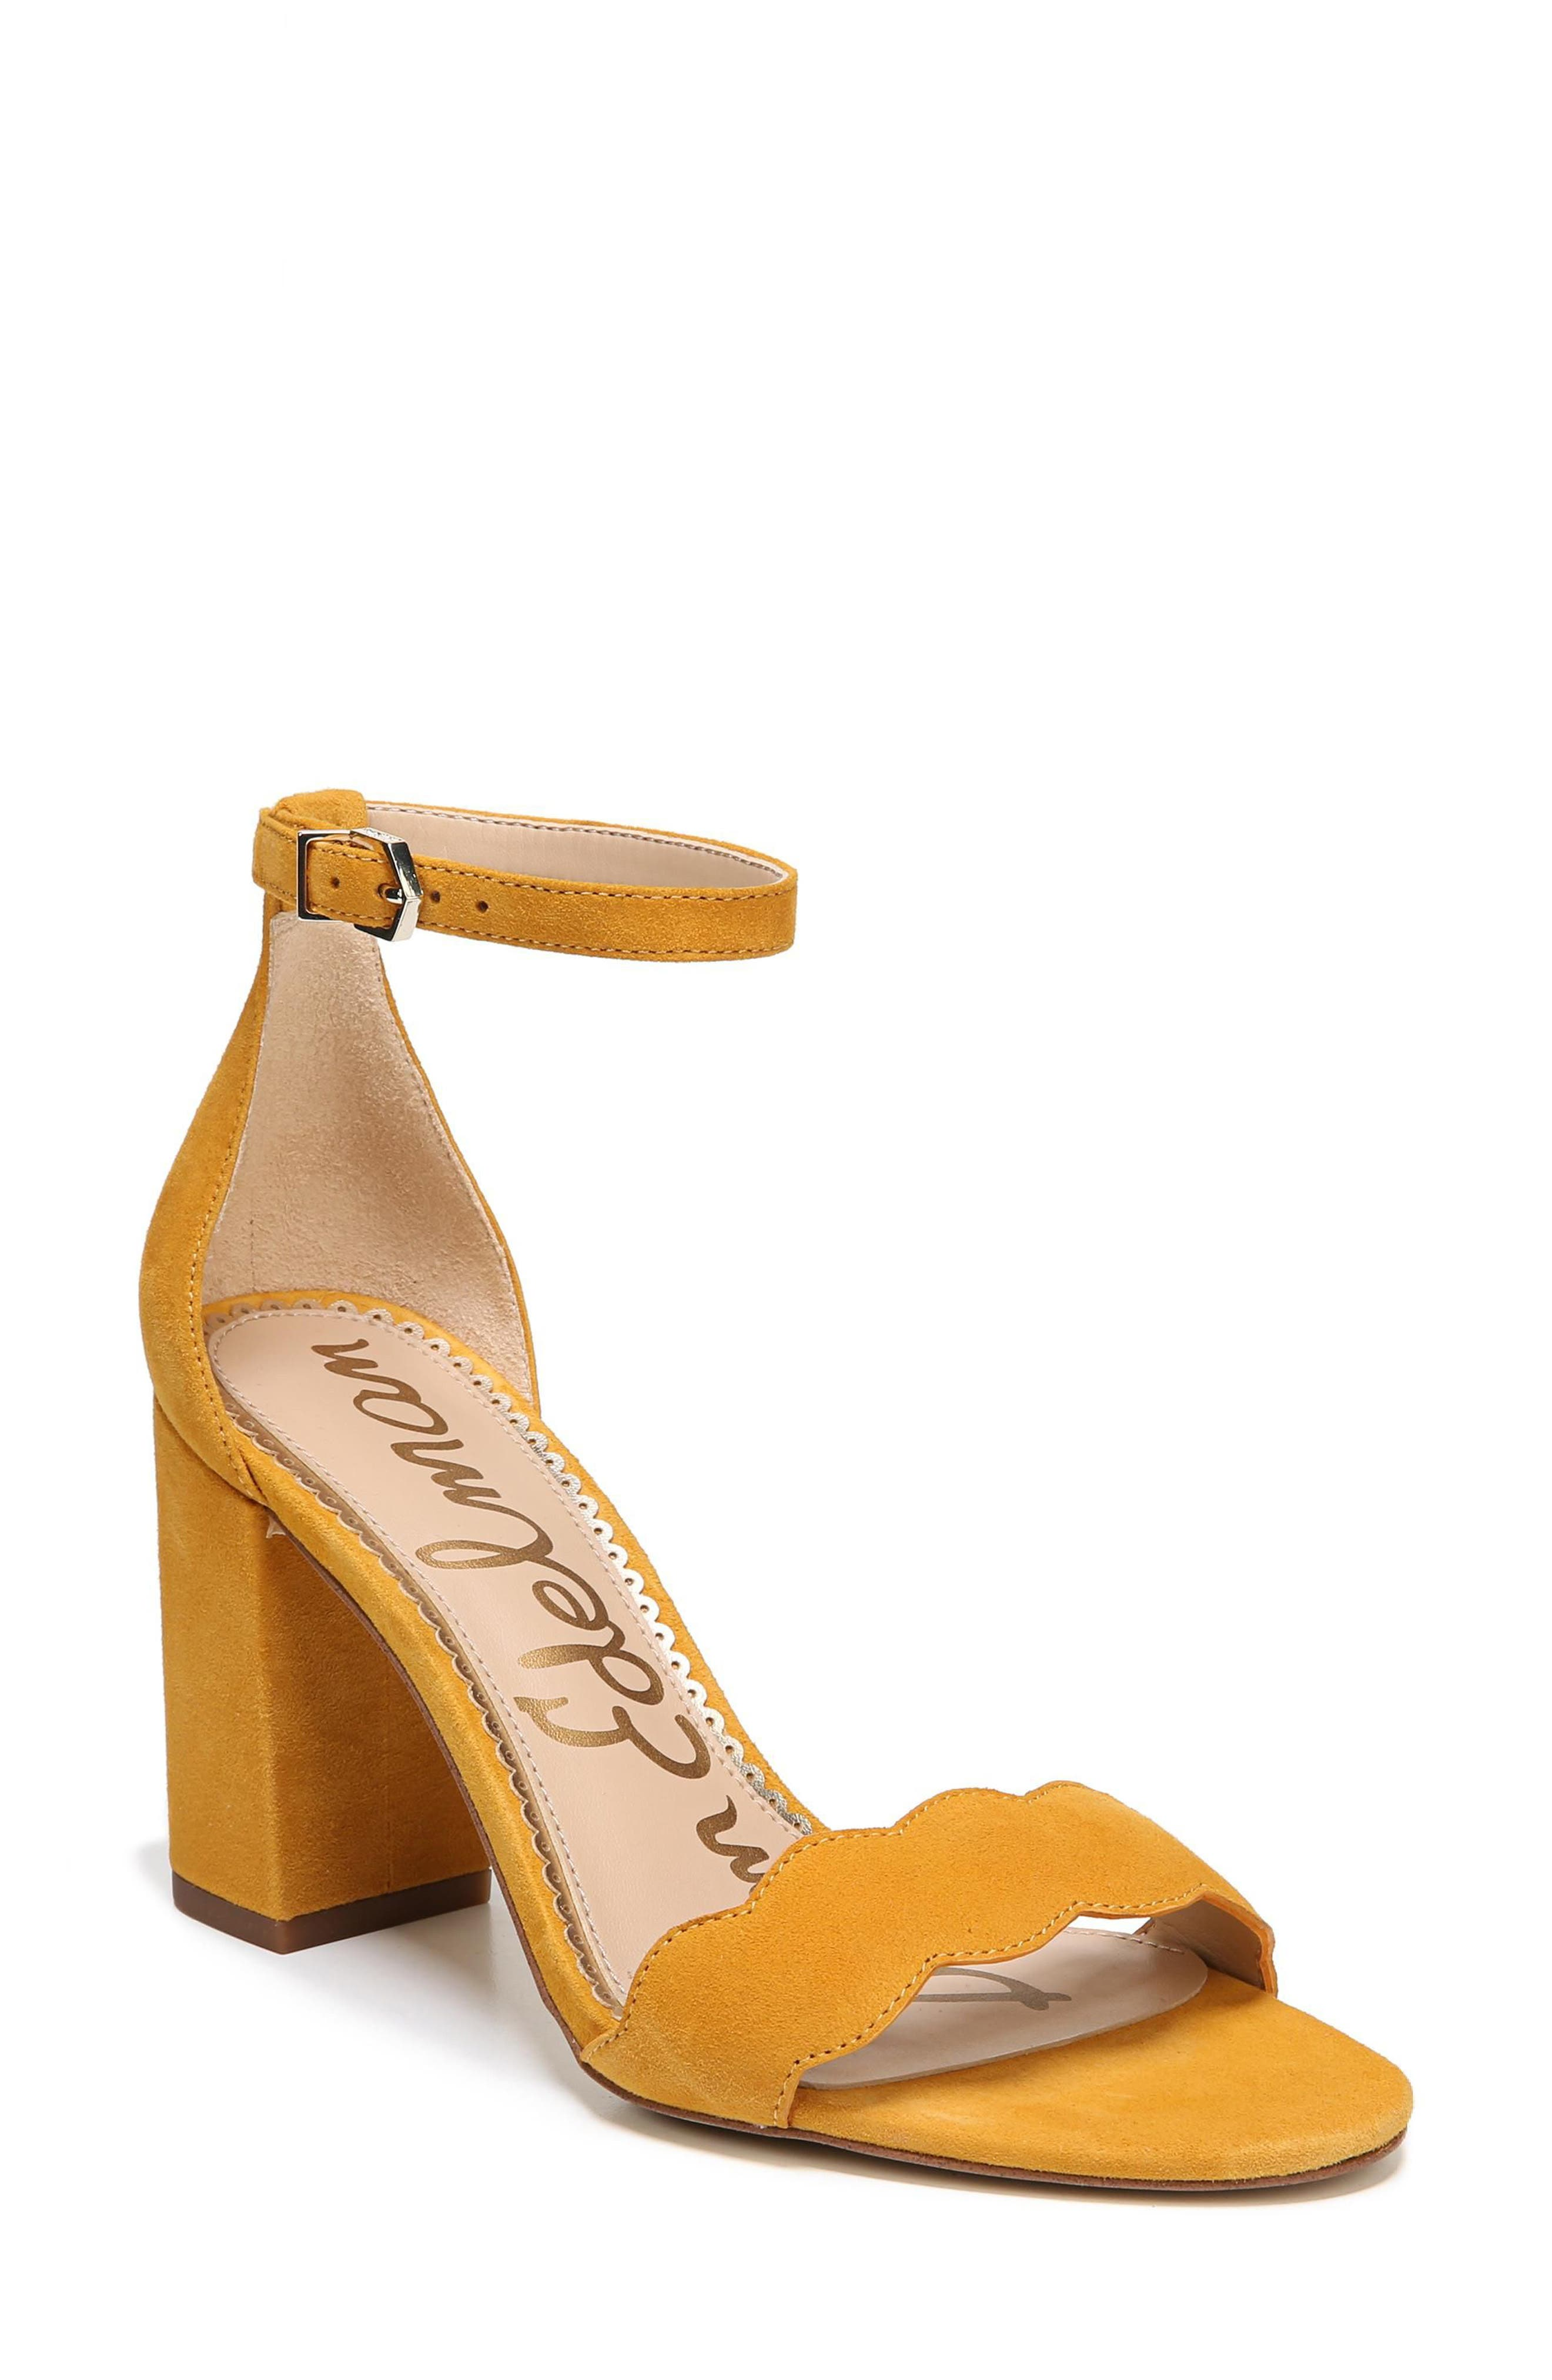 Find great deals on eBay for yellow high heels. Shop with confidence.